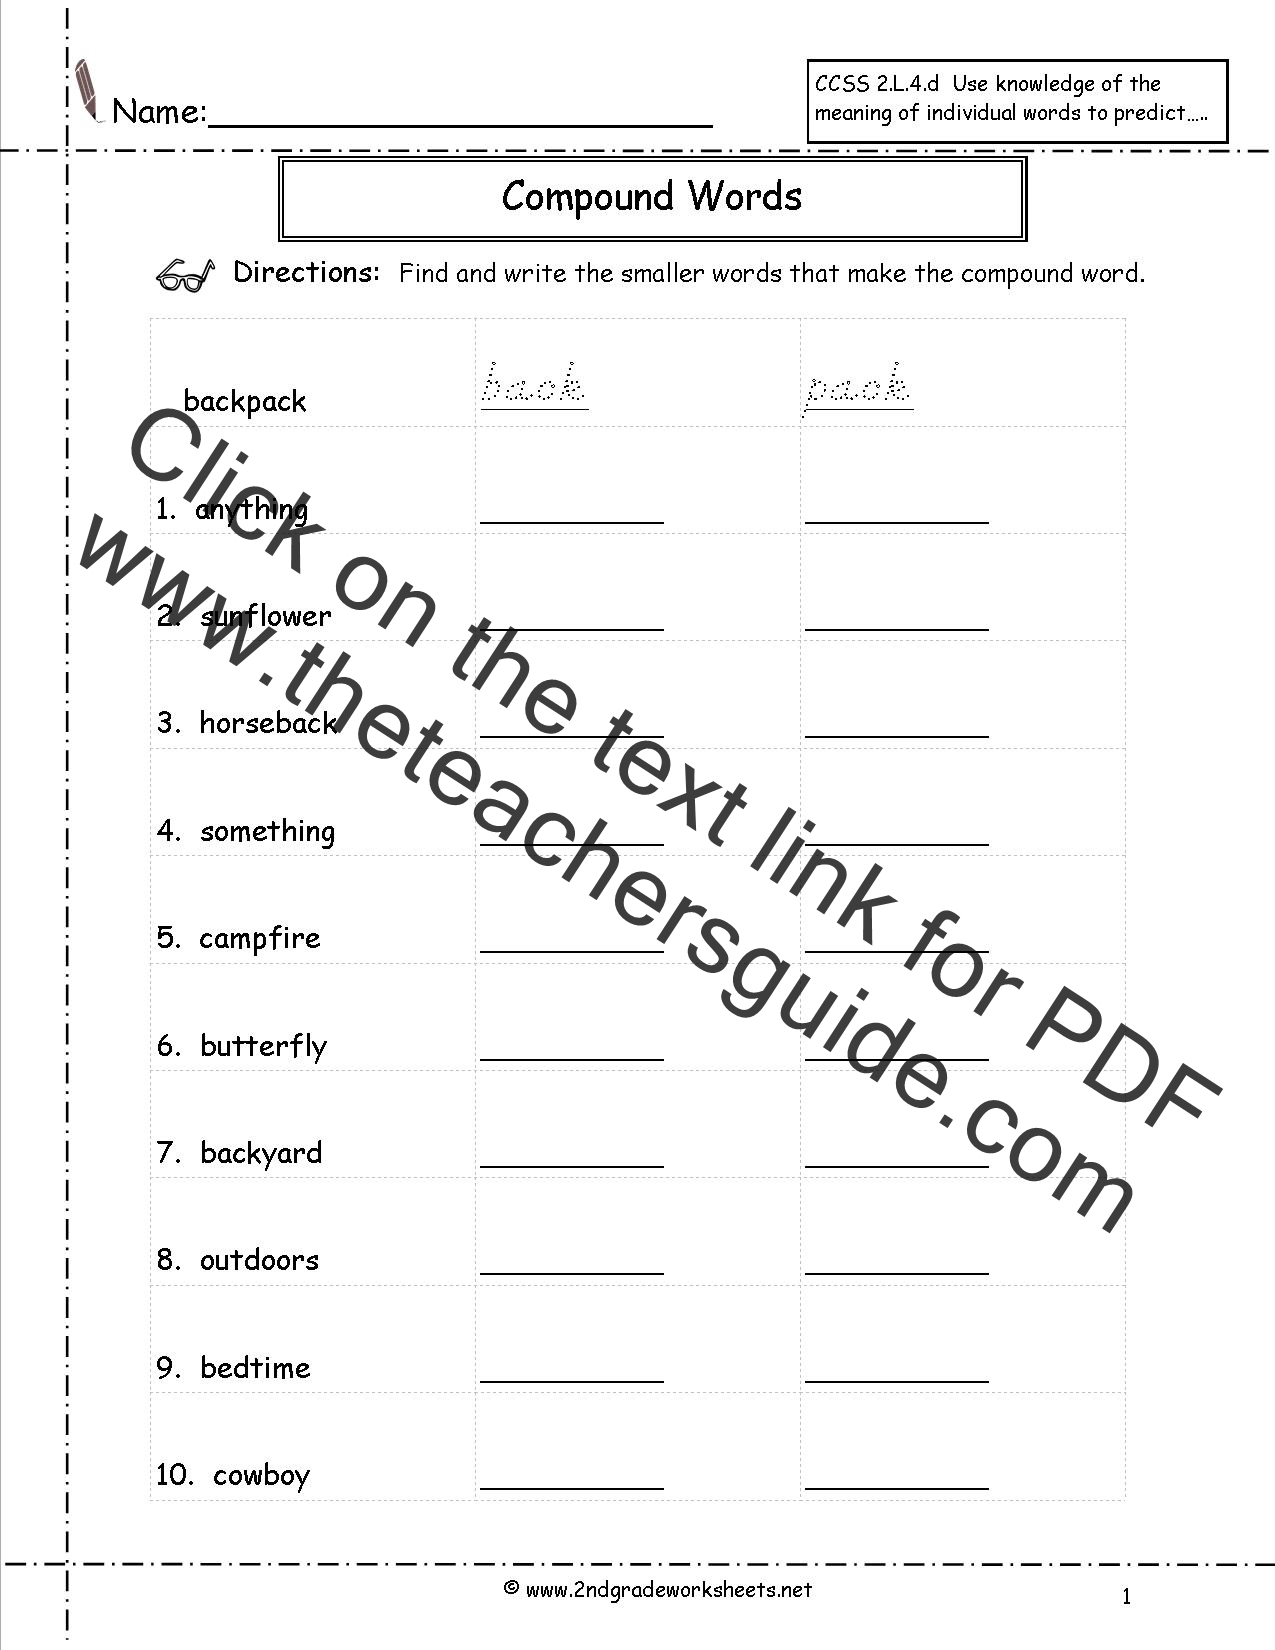 Free english worksheets for 2nd grade